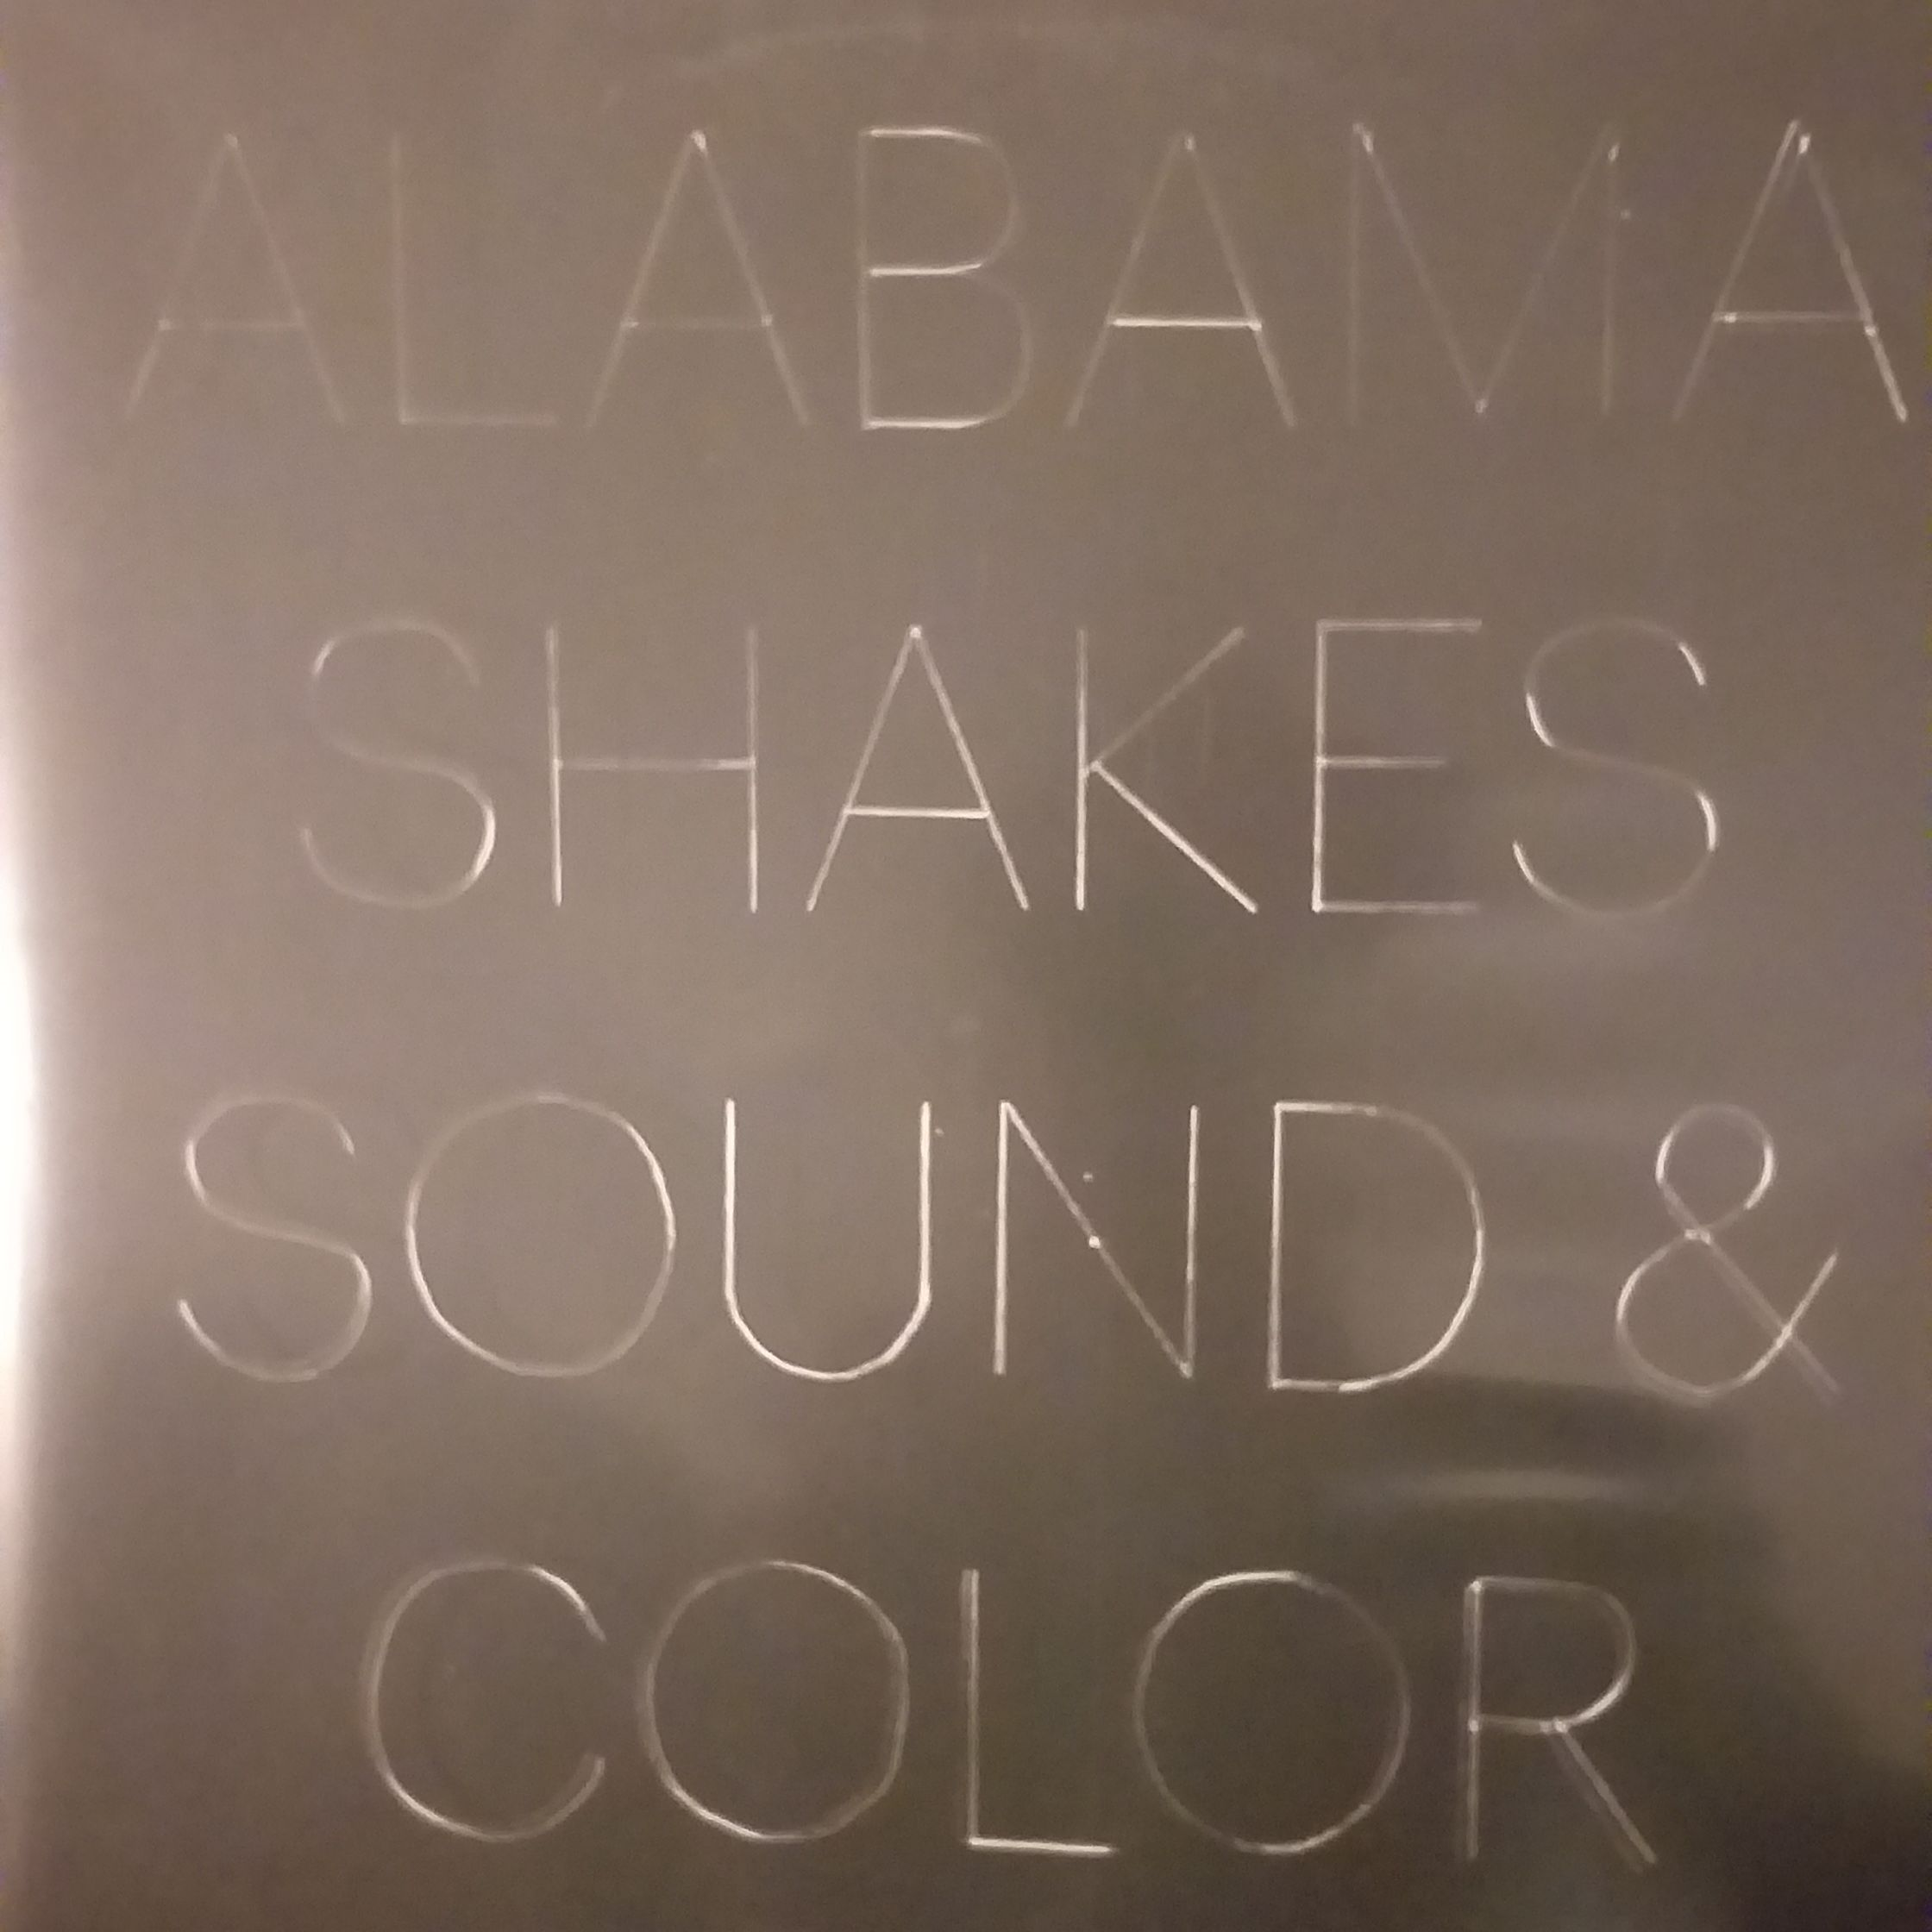 Alabama shakes Sound & color LP undefined